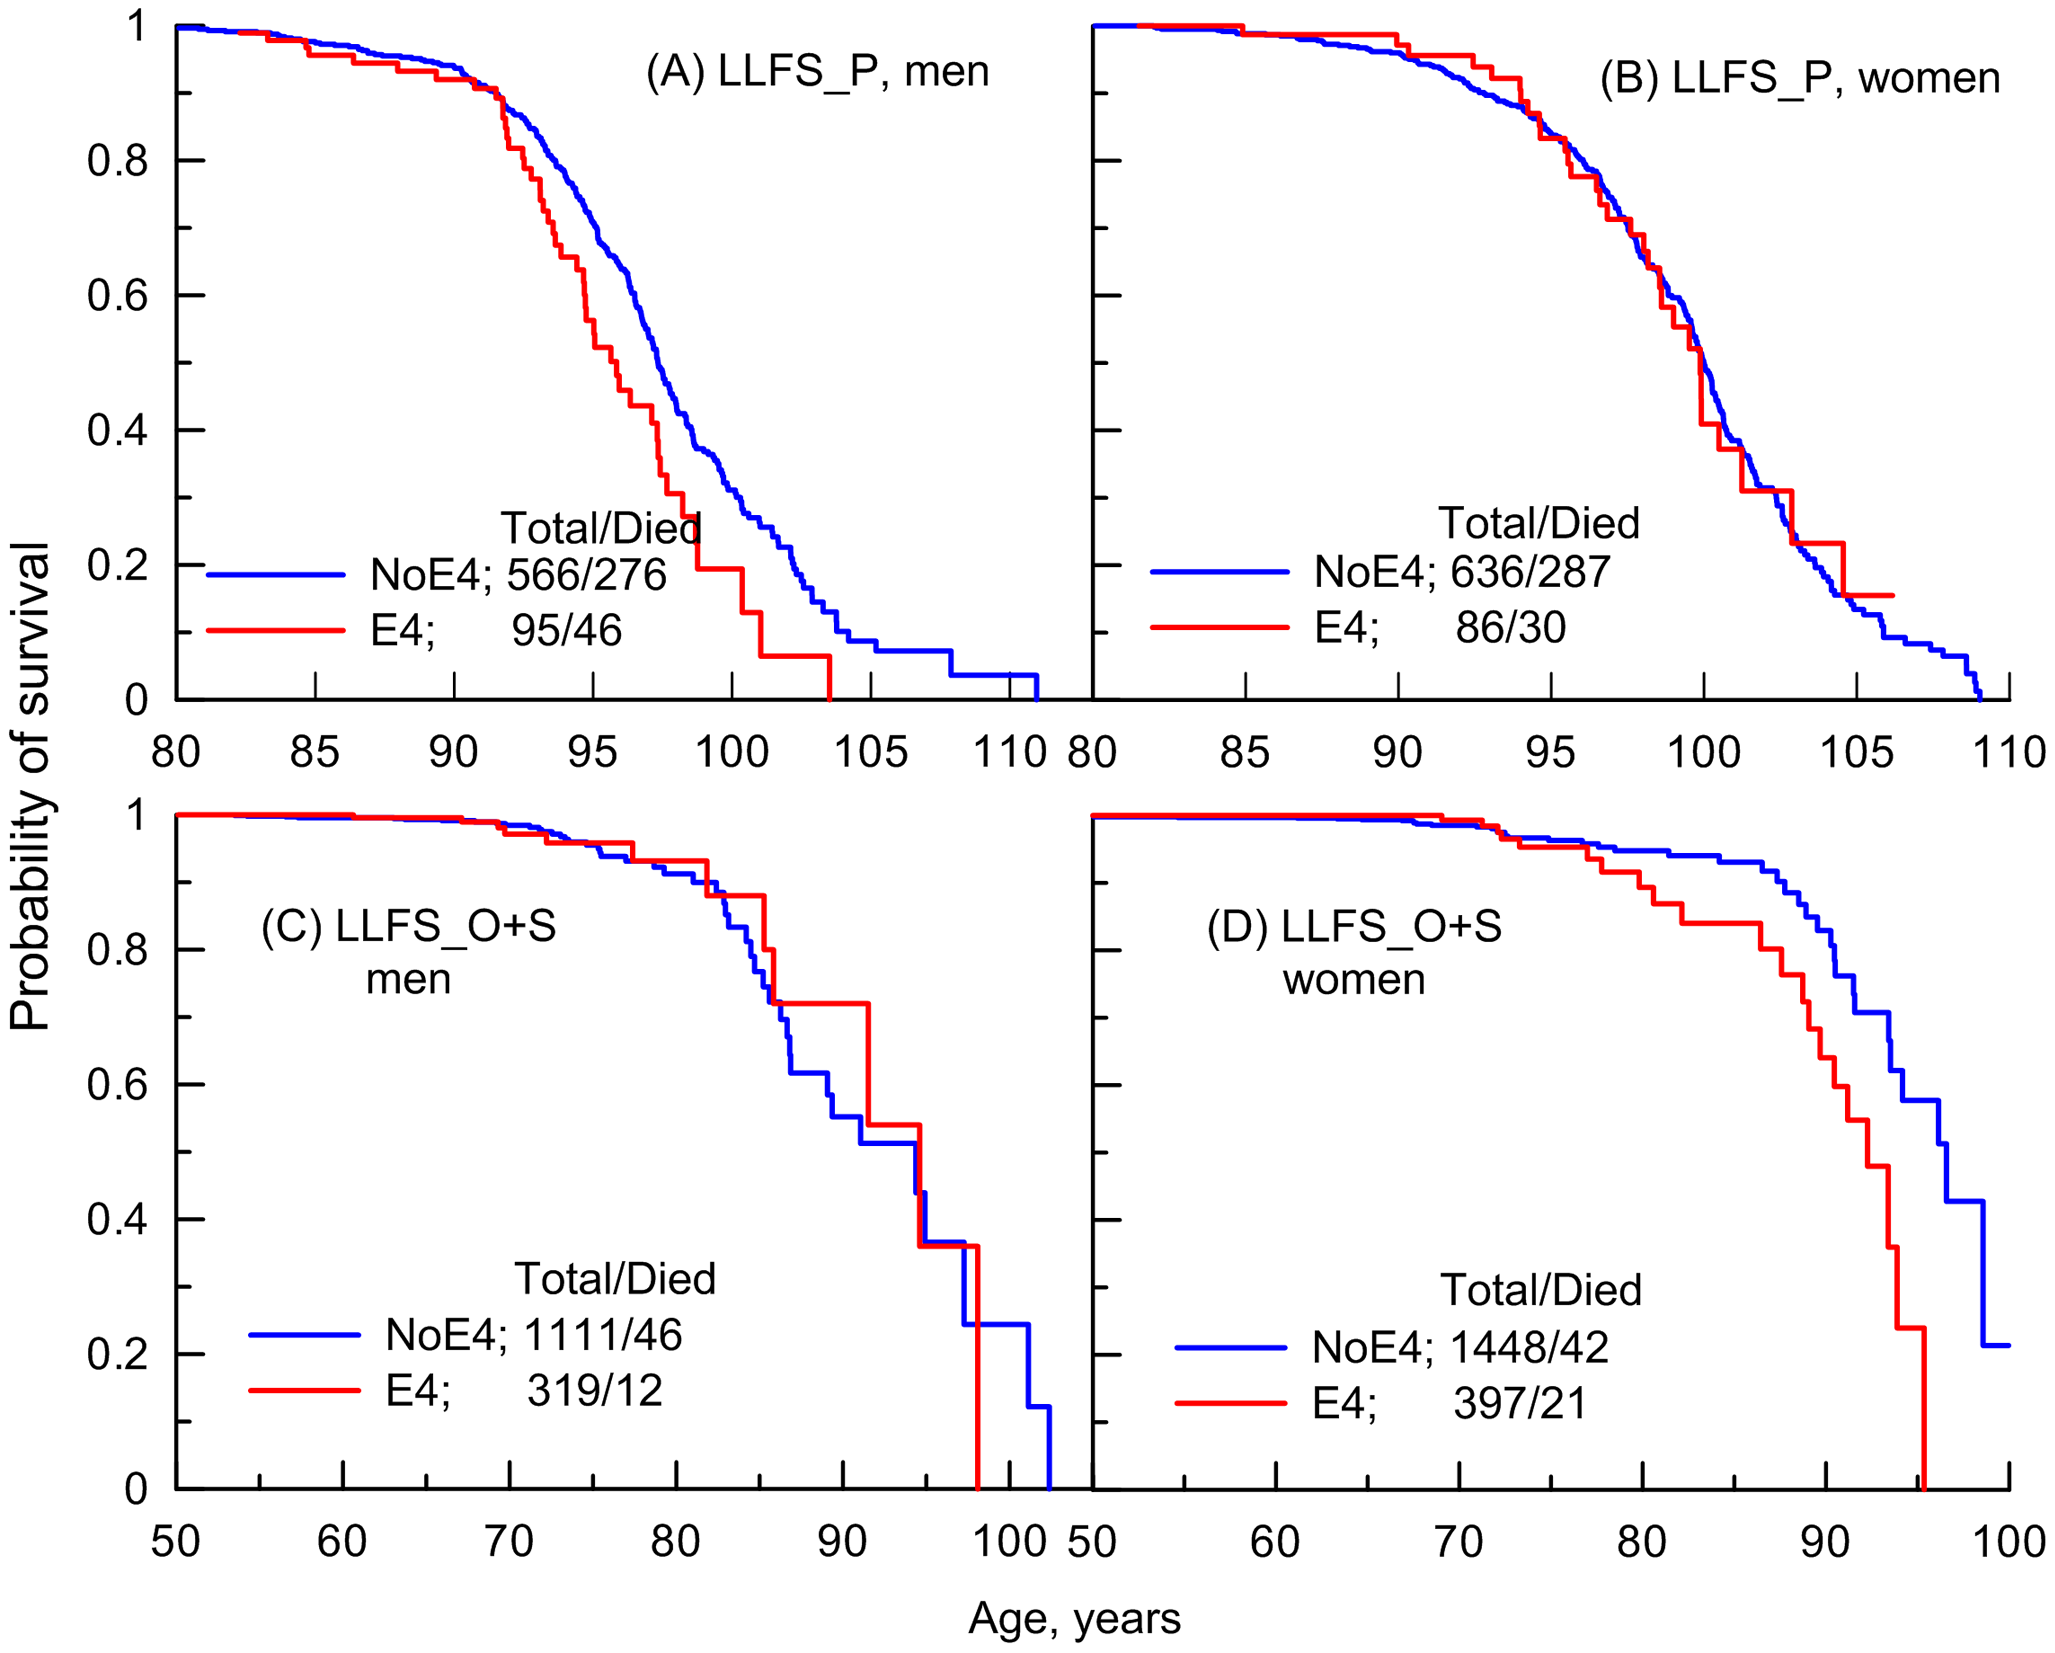 Empirical age patterns of survival of the ApoE4 carriers and non-carriers in the LLFS.